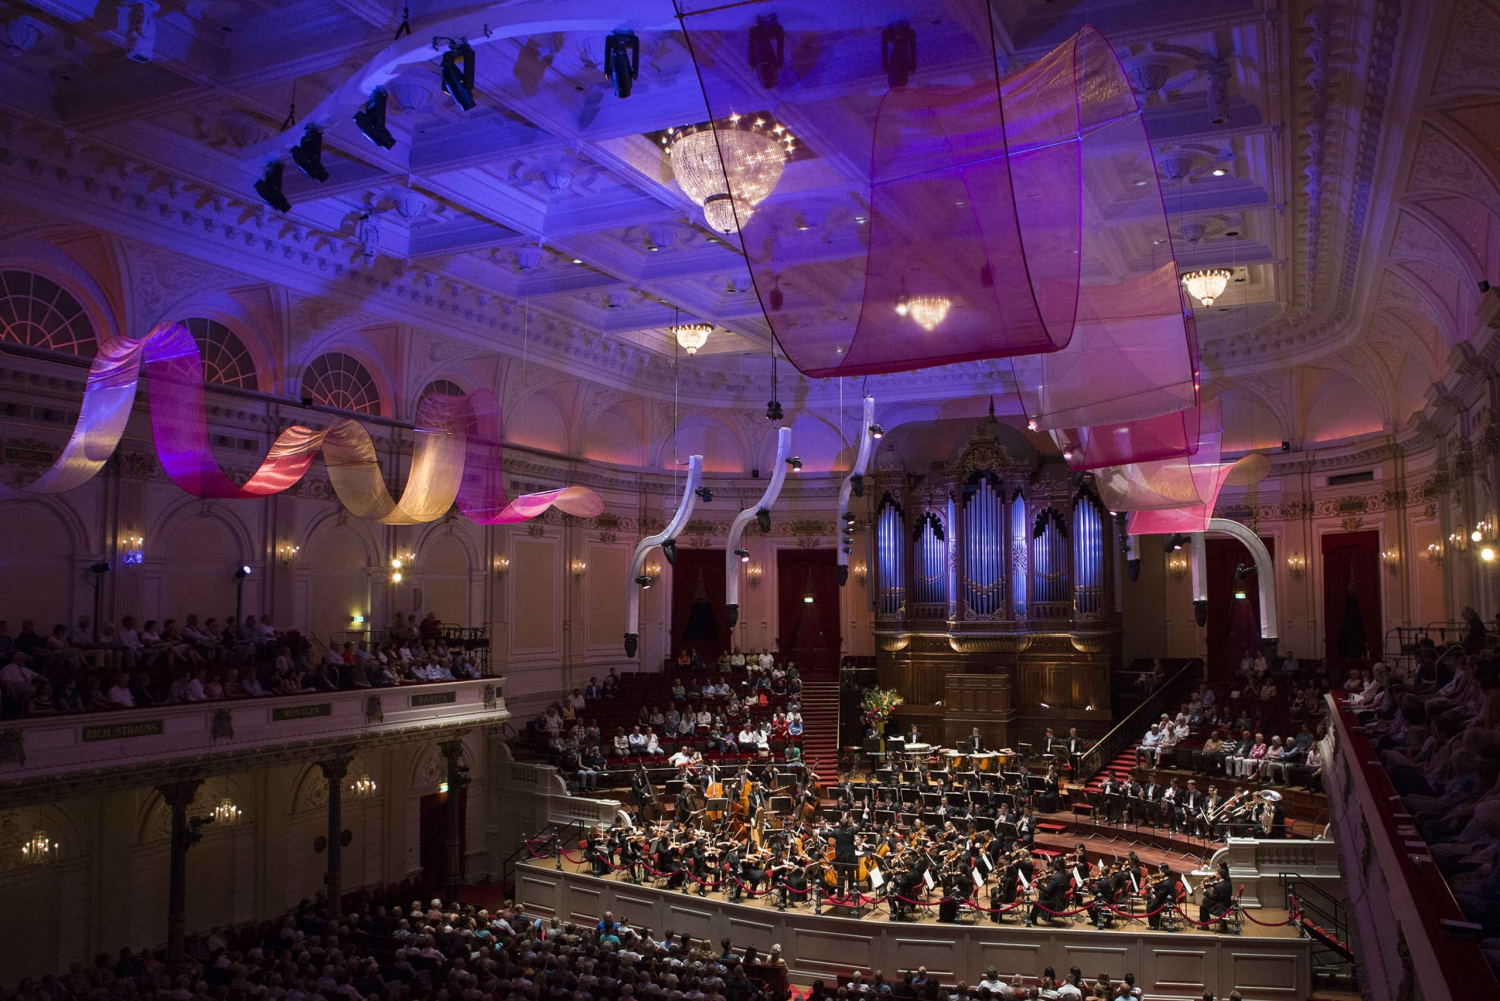 Netherlands Philharmonic Orchestra Concert